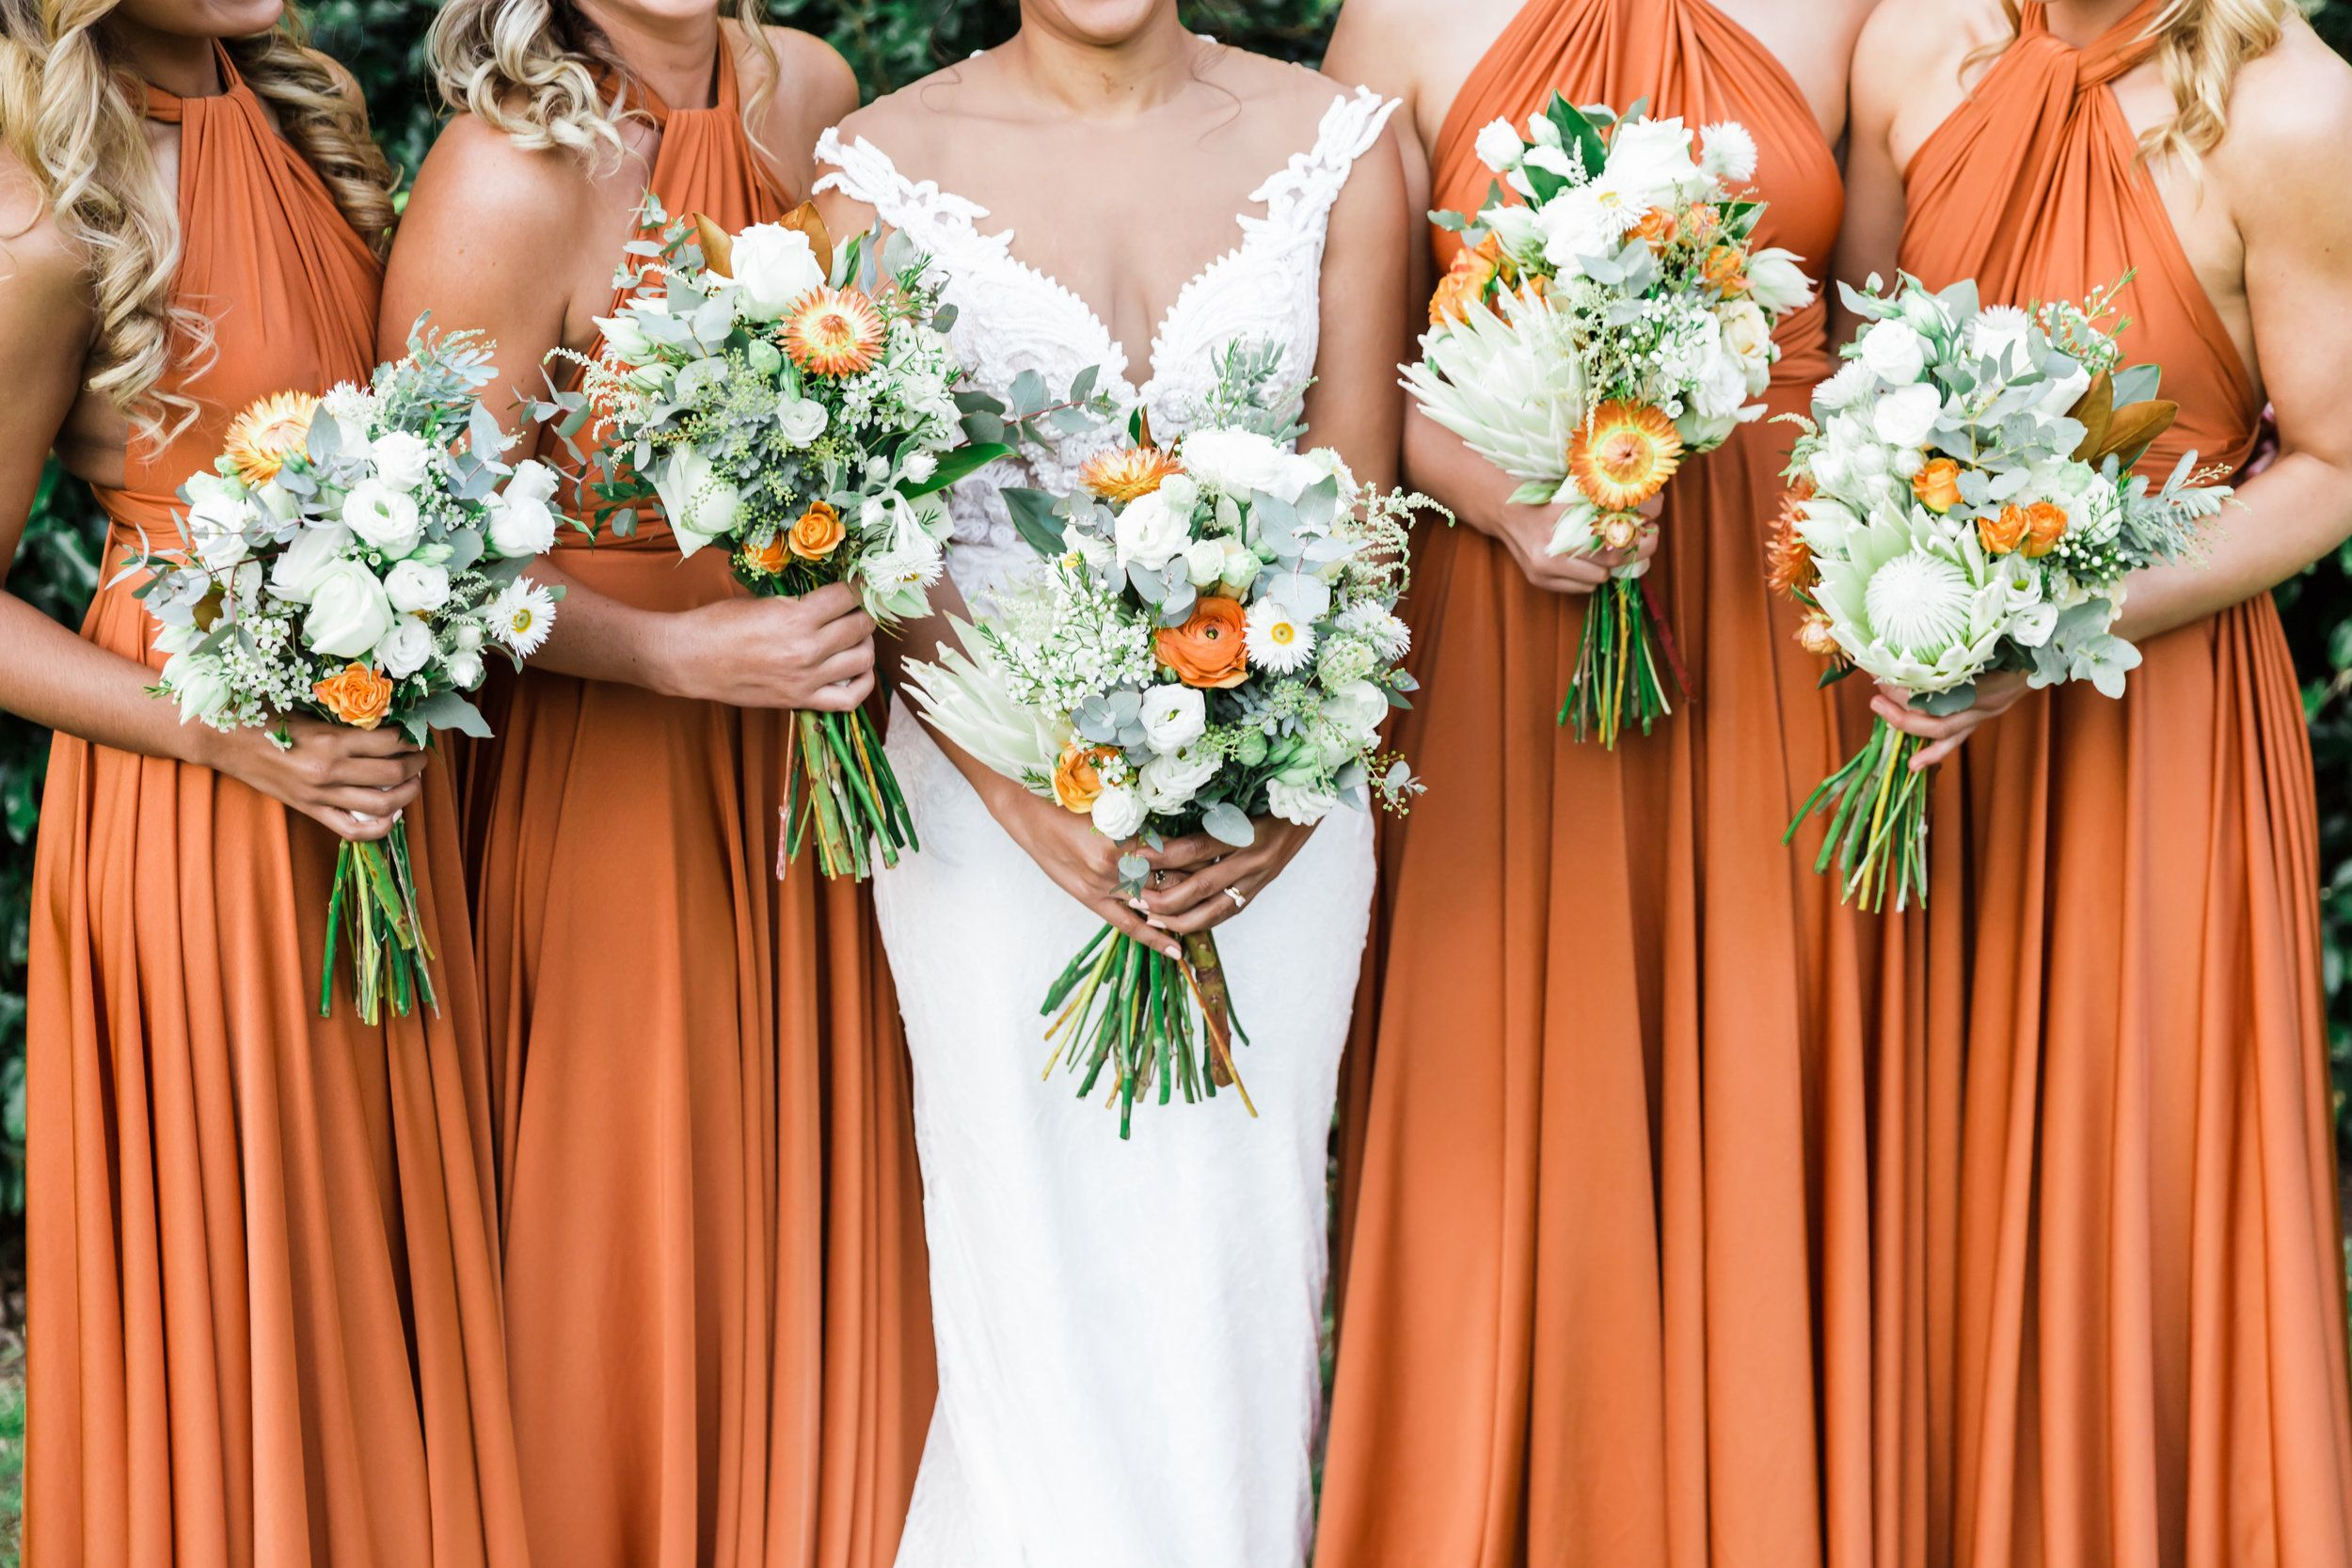 Fall Bridesmaids Dresses Burnt Orange Signature Multiway Gowns By Goddess By Nature Weddi Fall Bridesmaid Dresses Orange Bridesmaid Dresses Fall Bridesmaids